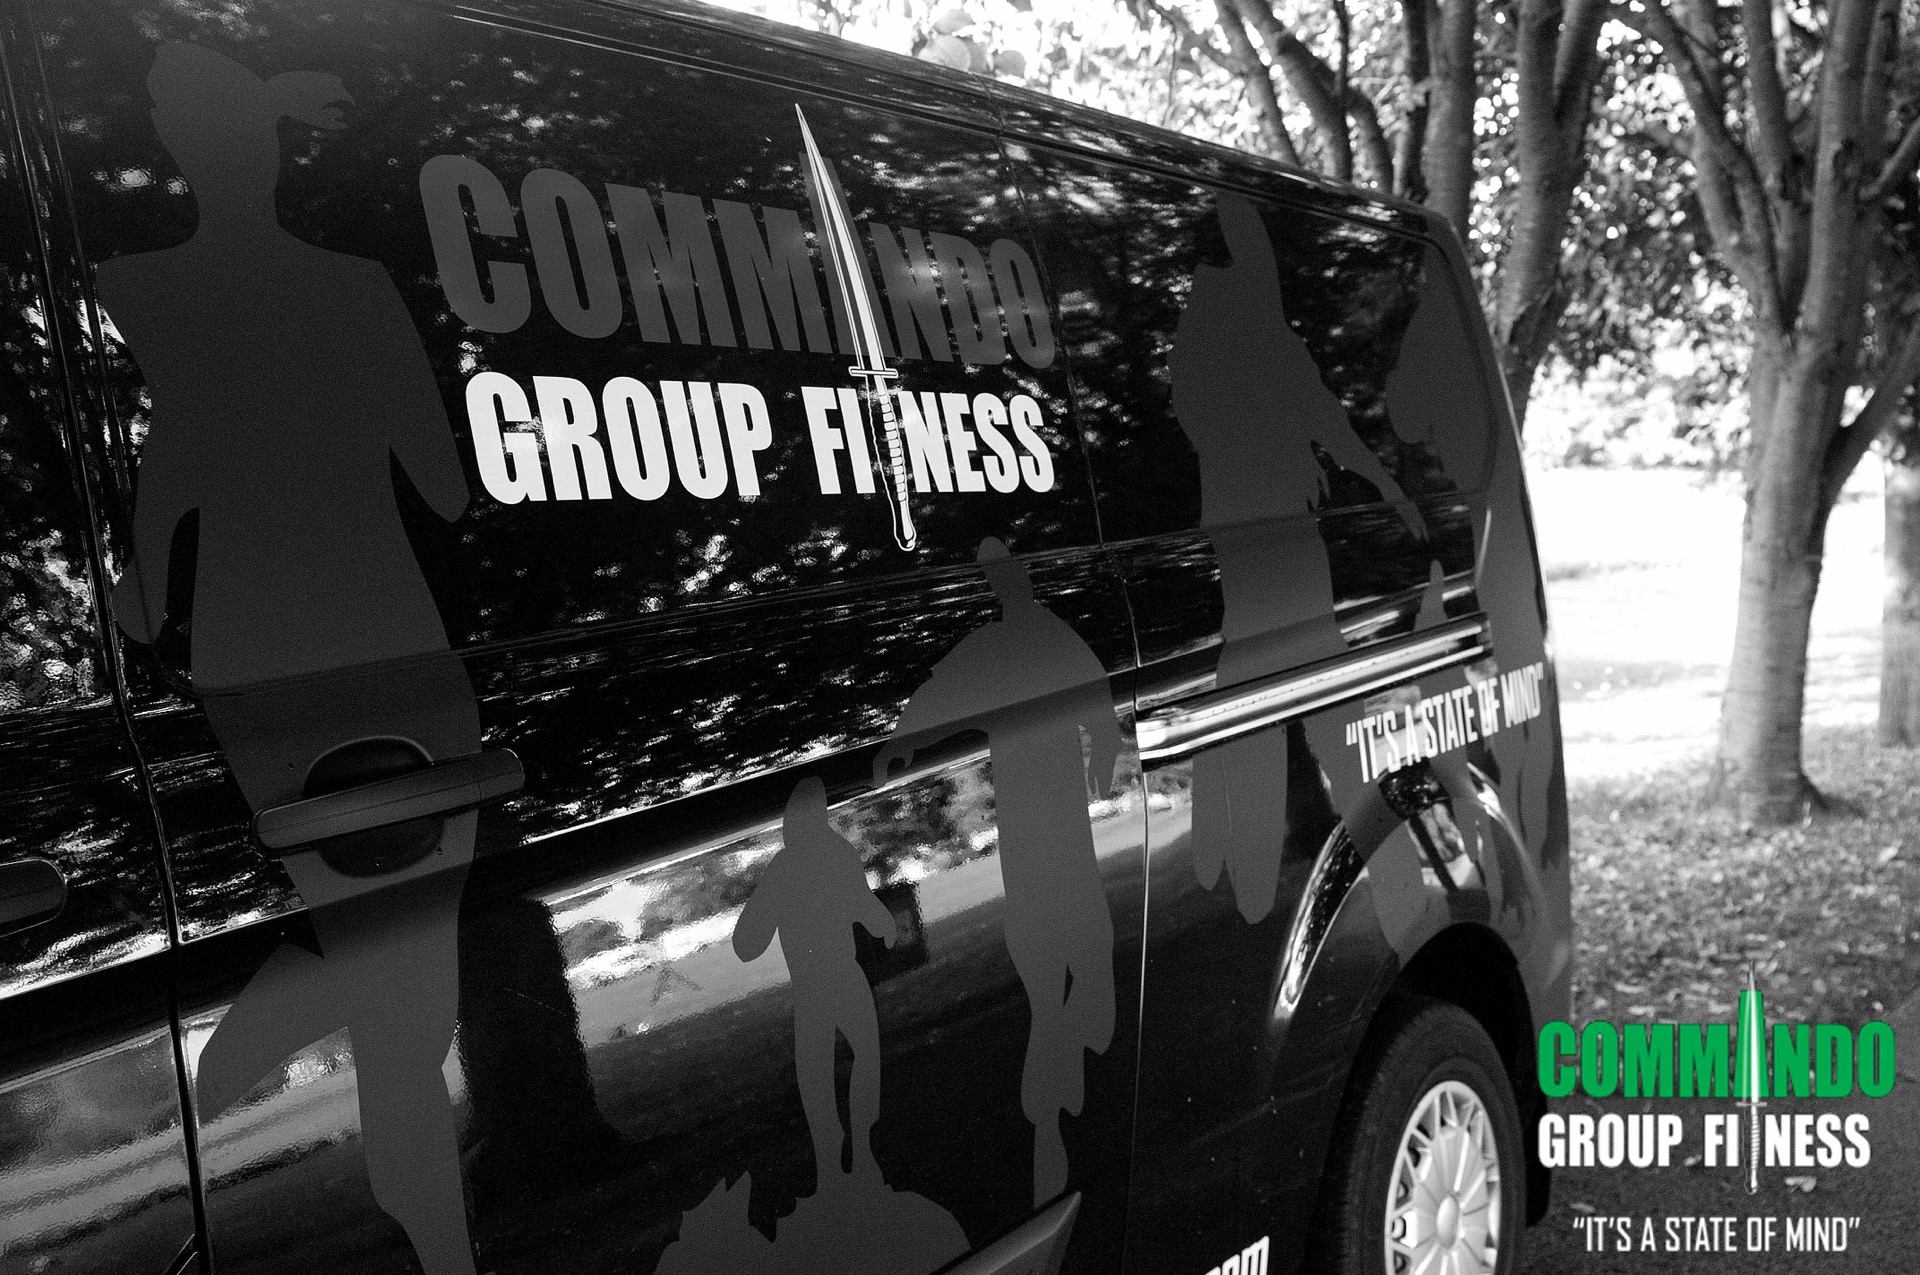 commando_group_fitness00016